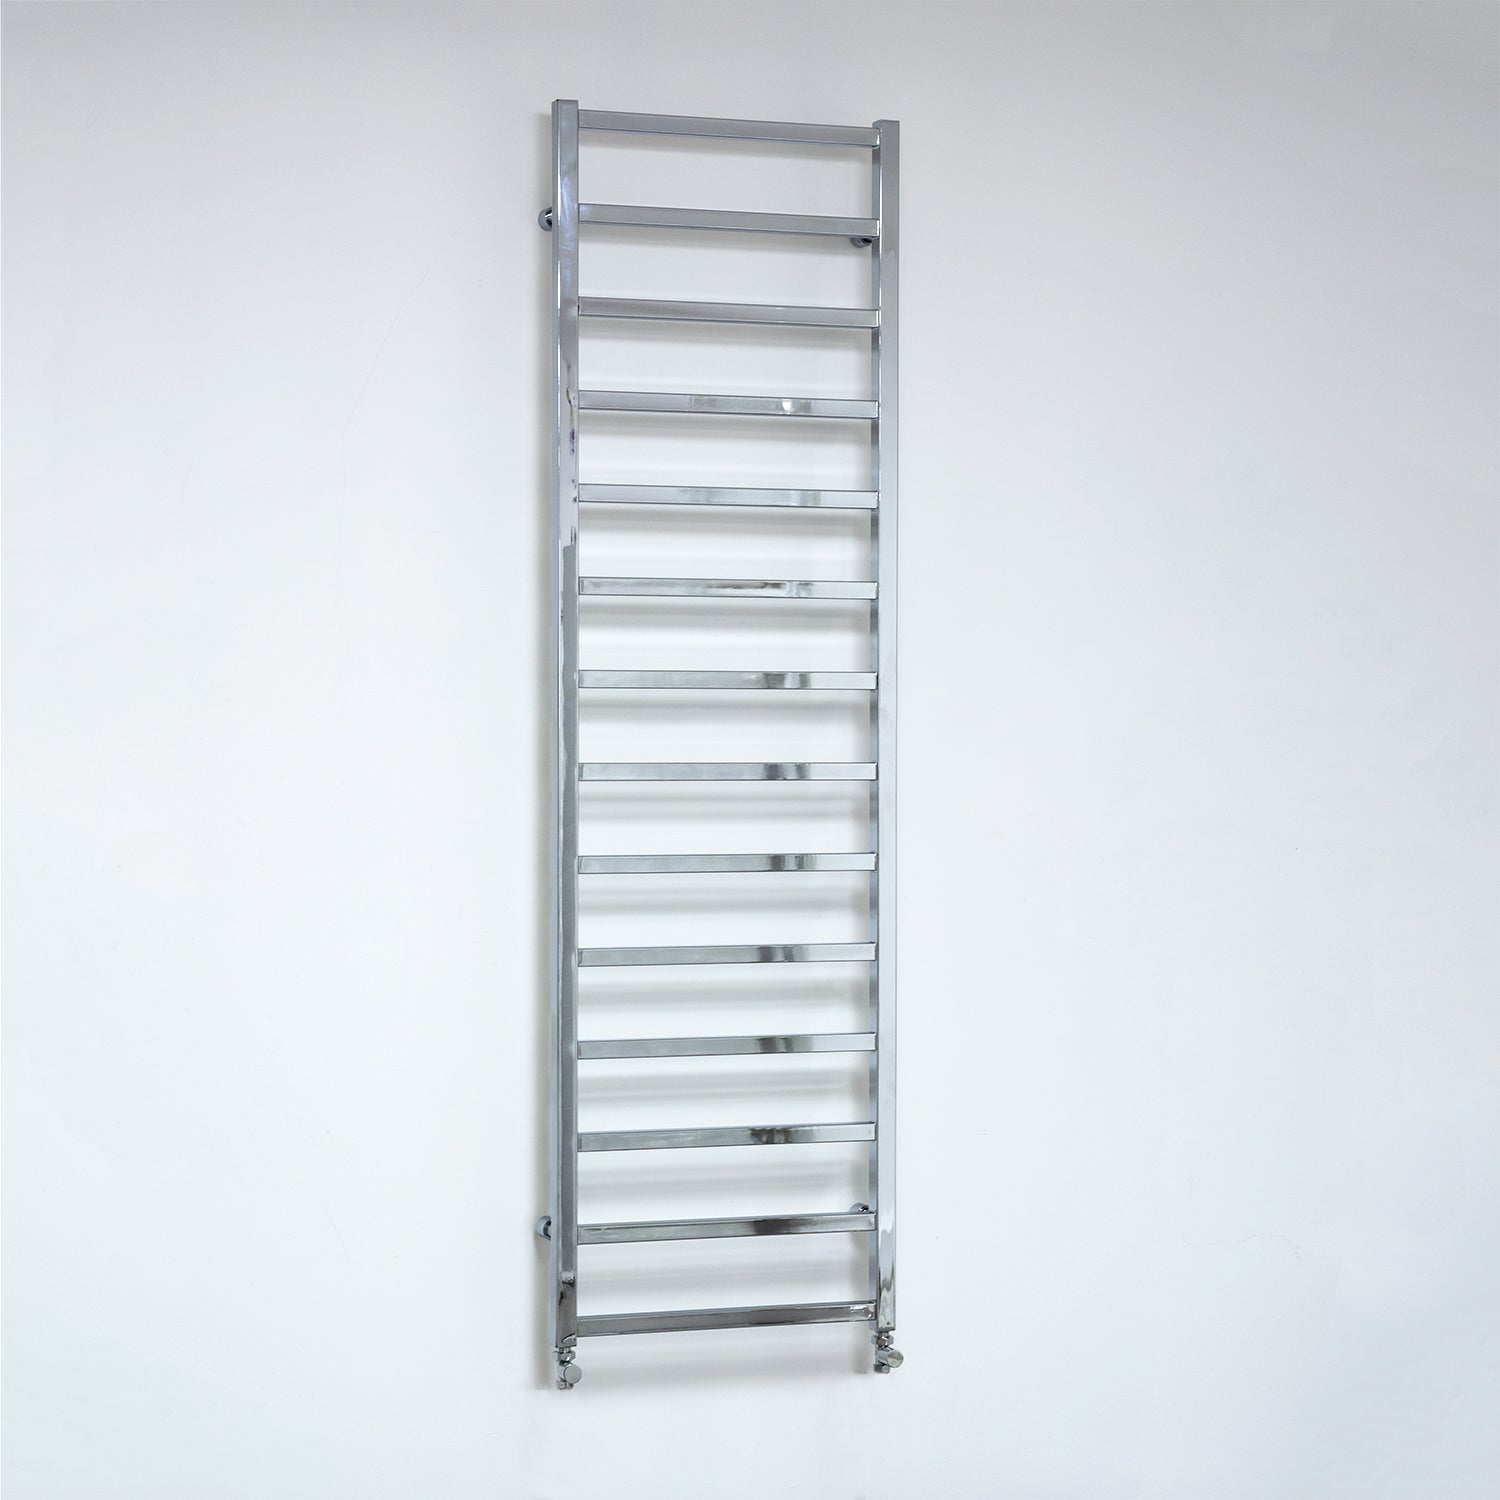 500mm Wide 1700mm High Flat Chrome Square Tube Heated Towel Rail Radiator,Towel Rail Only